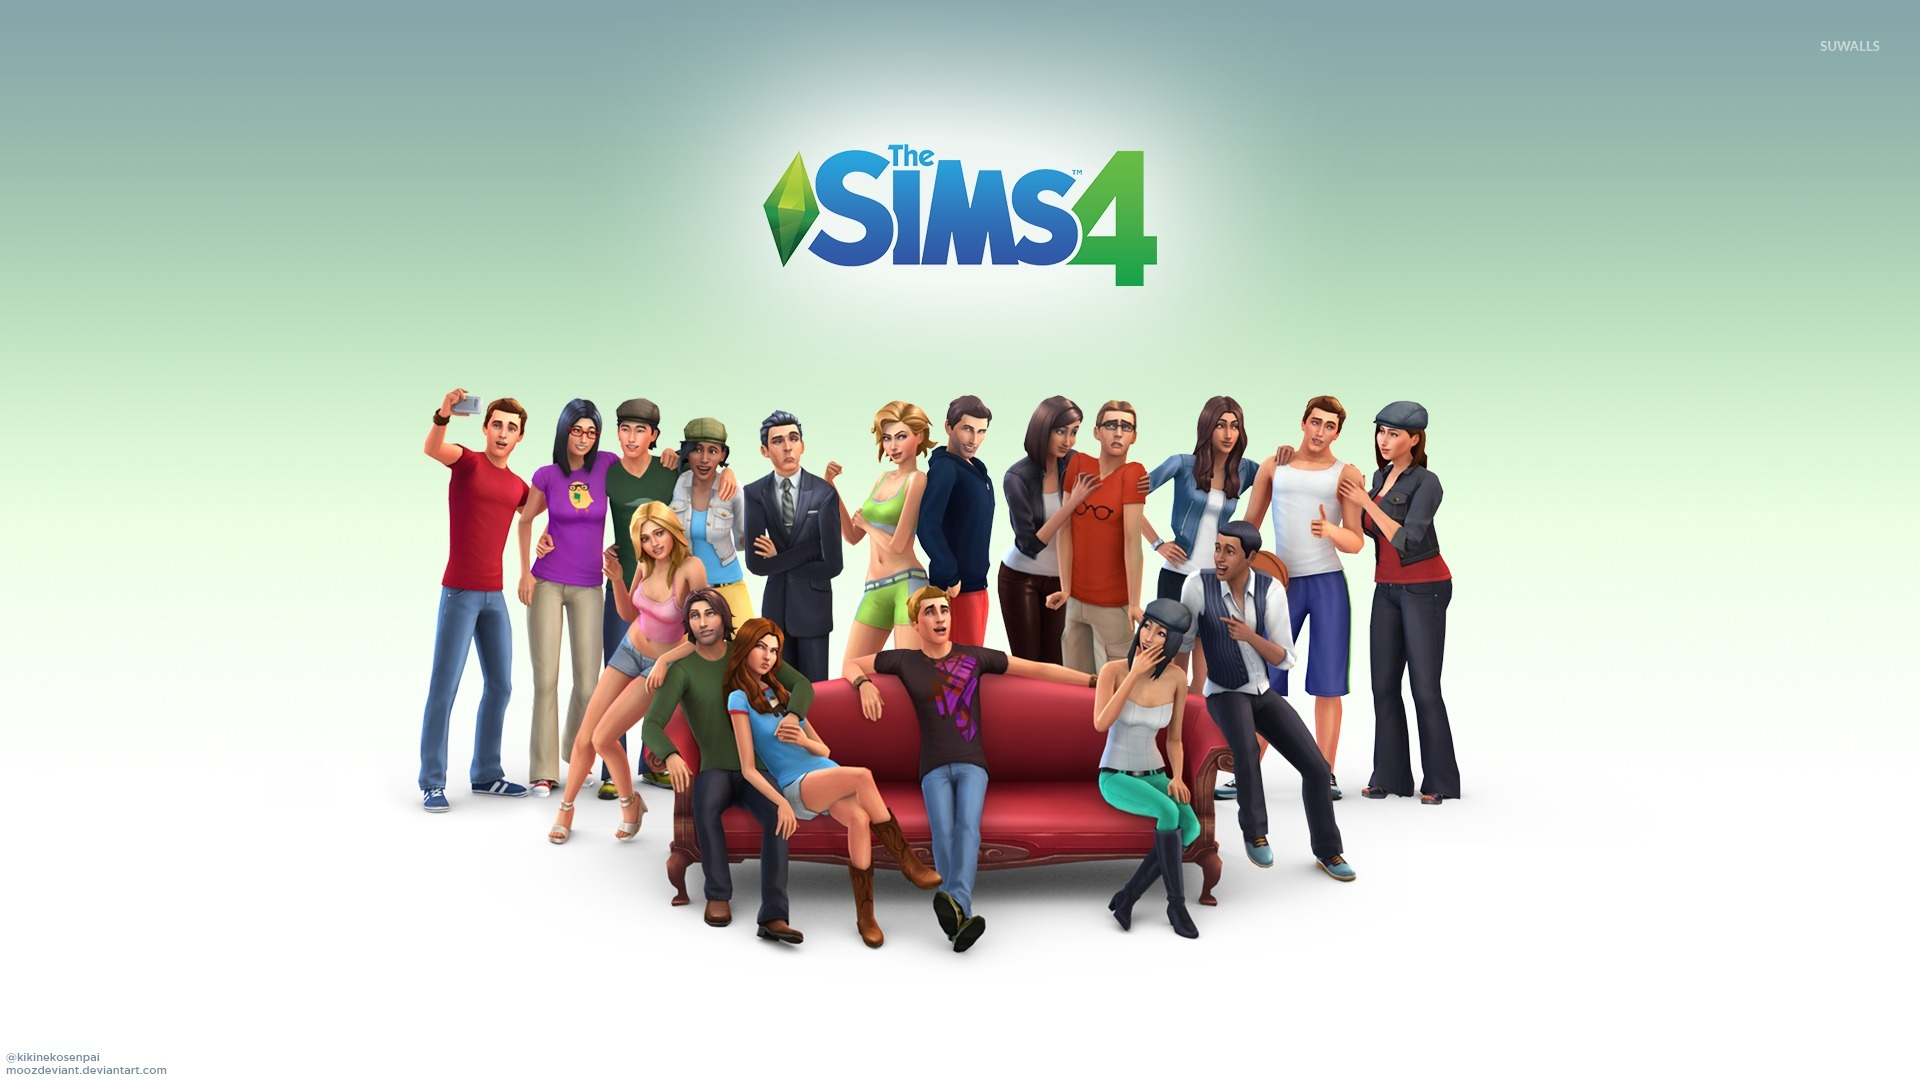 The Sims 4 Wallpaper Game Wallpapers 25914